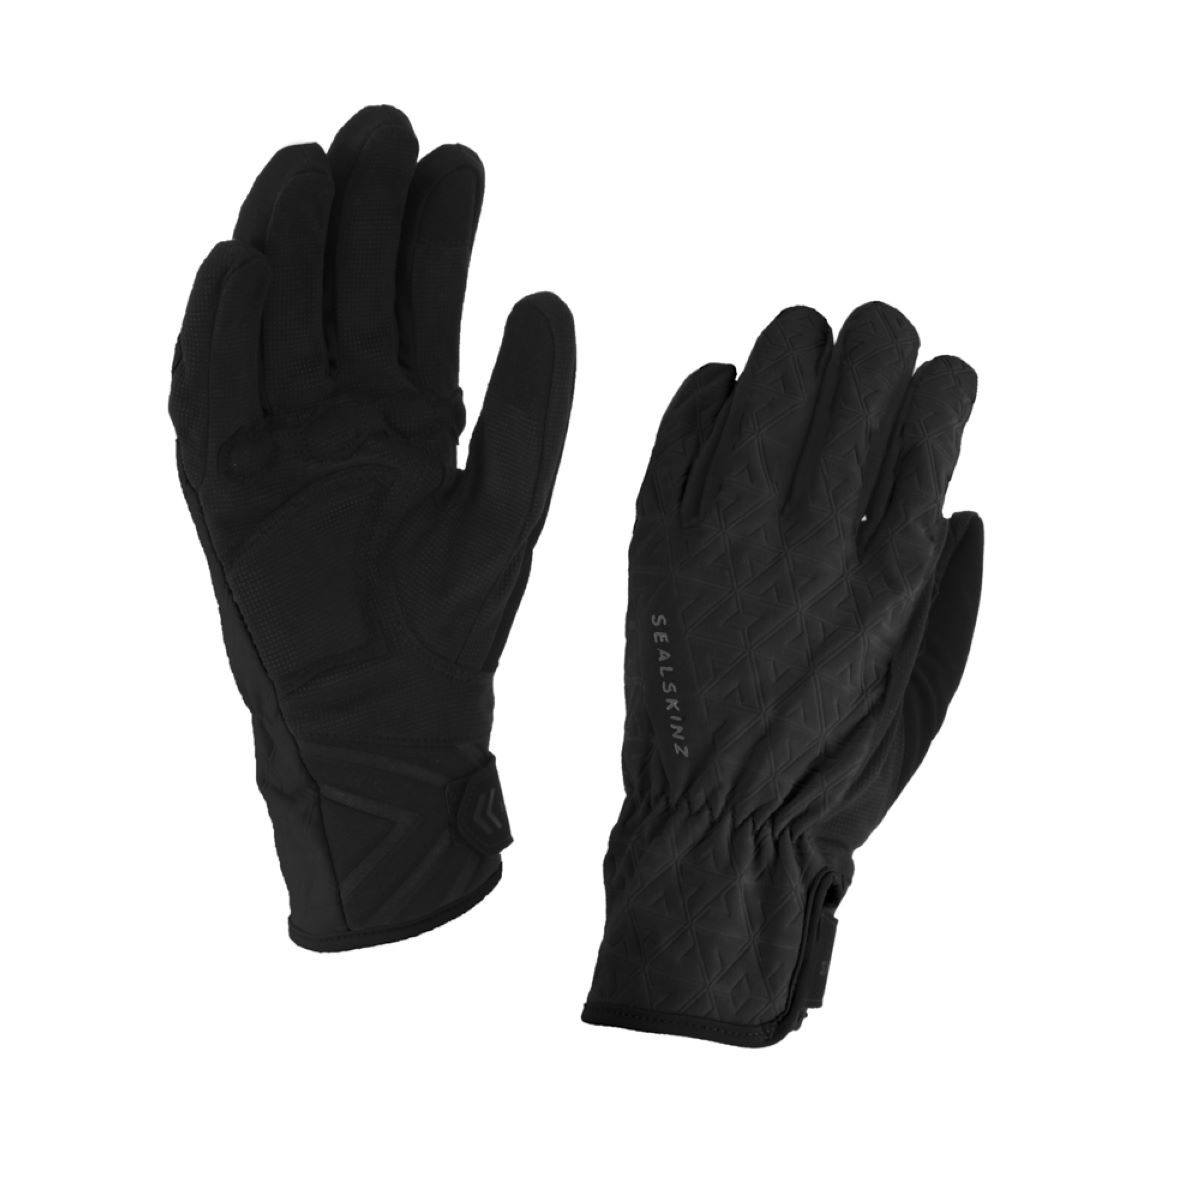 Gants cyclistes Femme SealSkinz All Weather - M Noir/Charbon